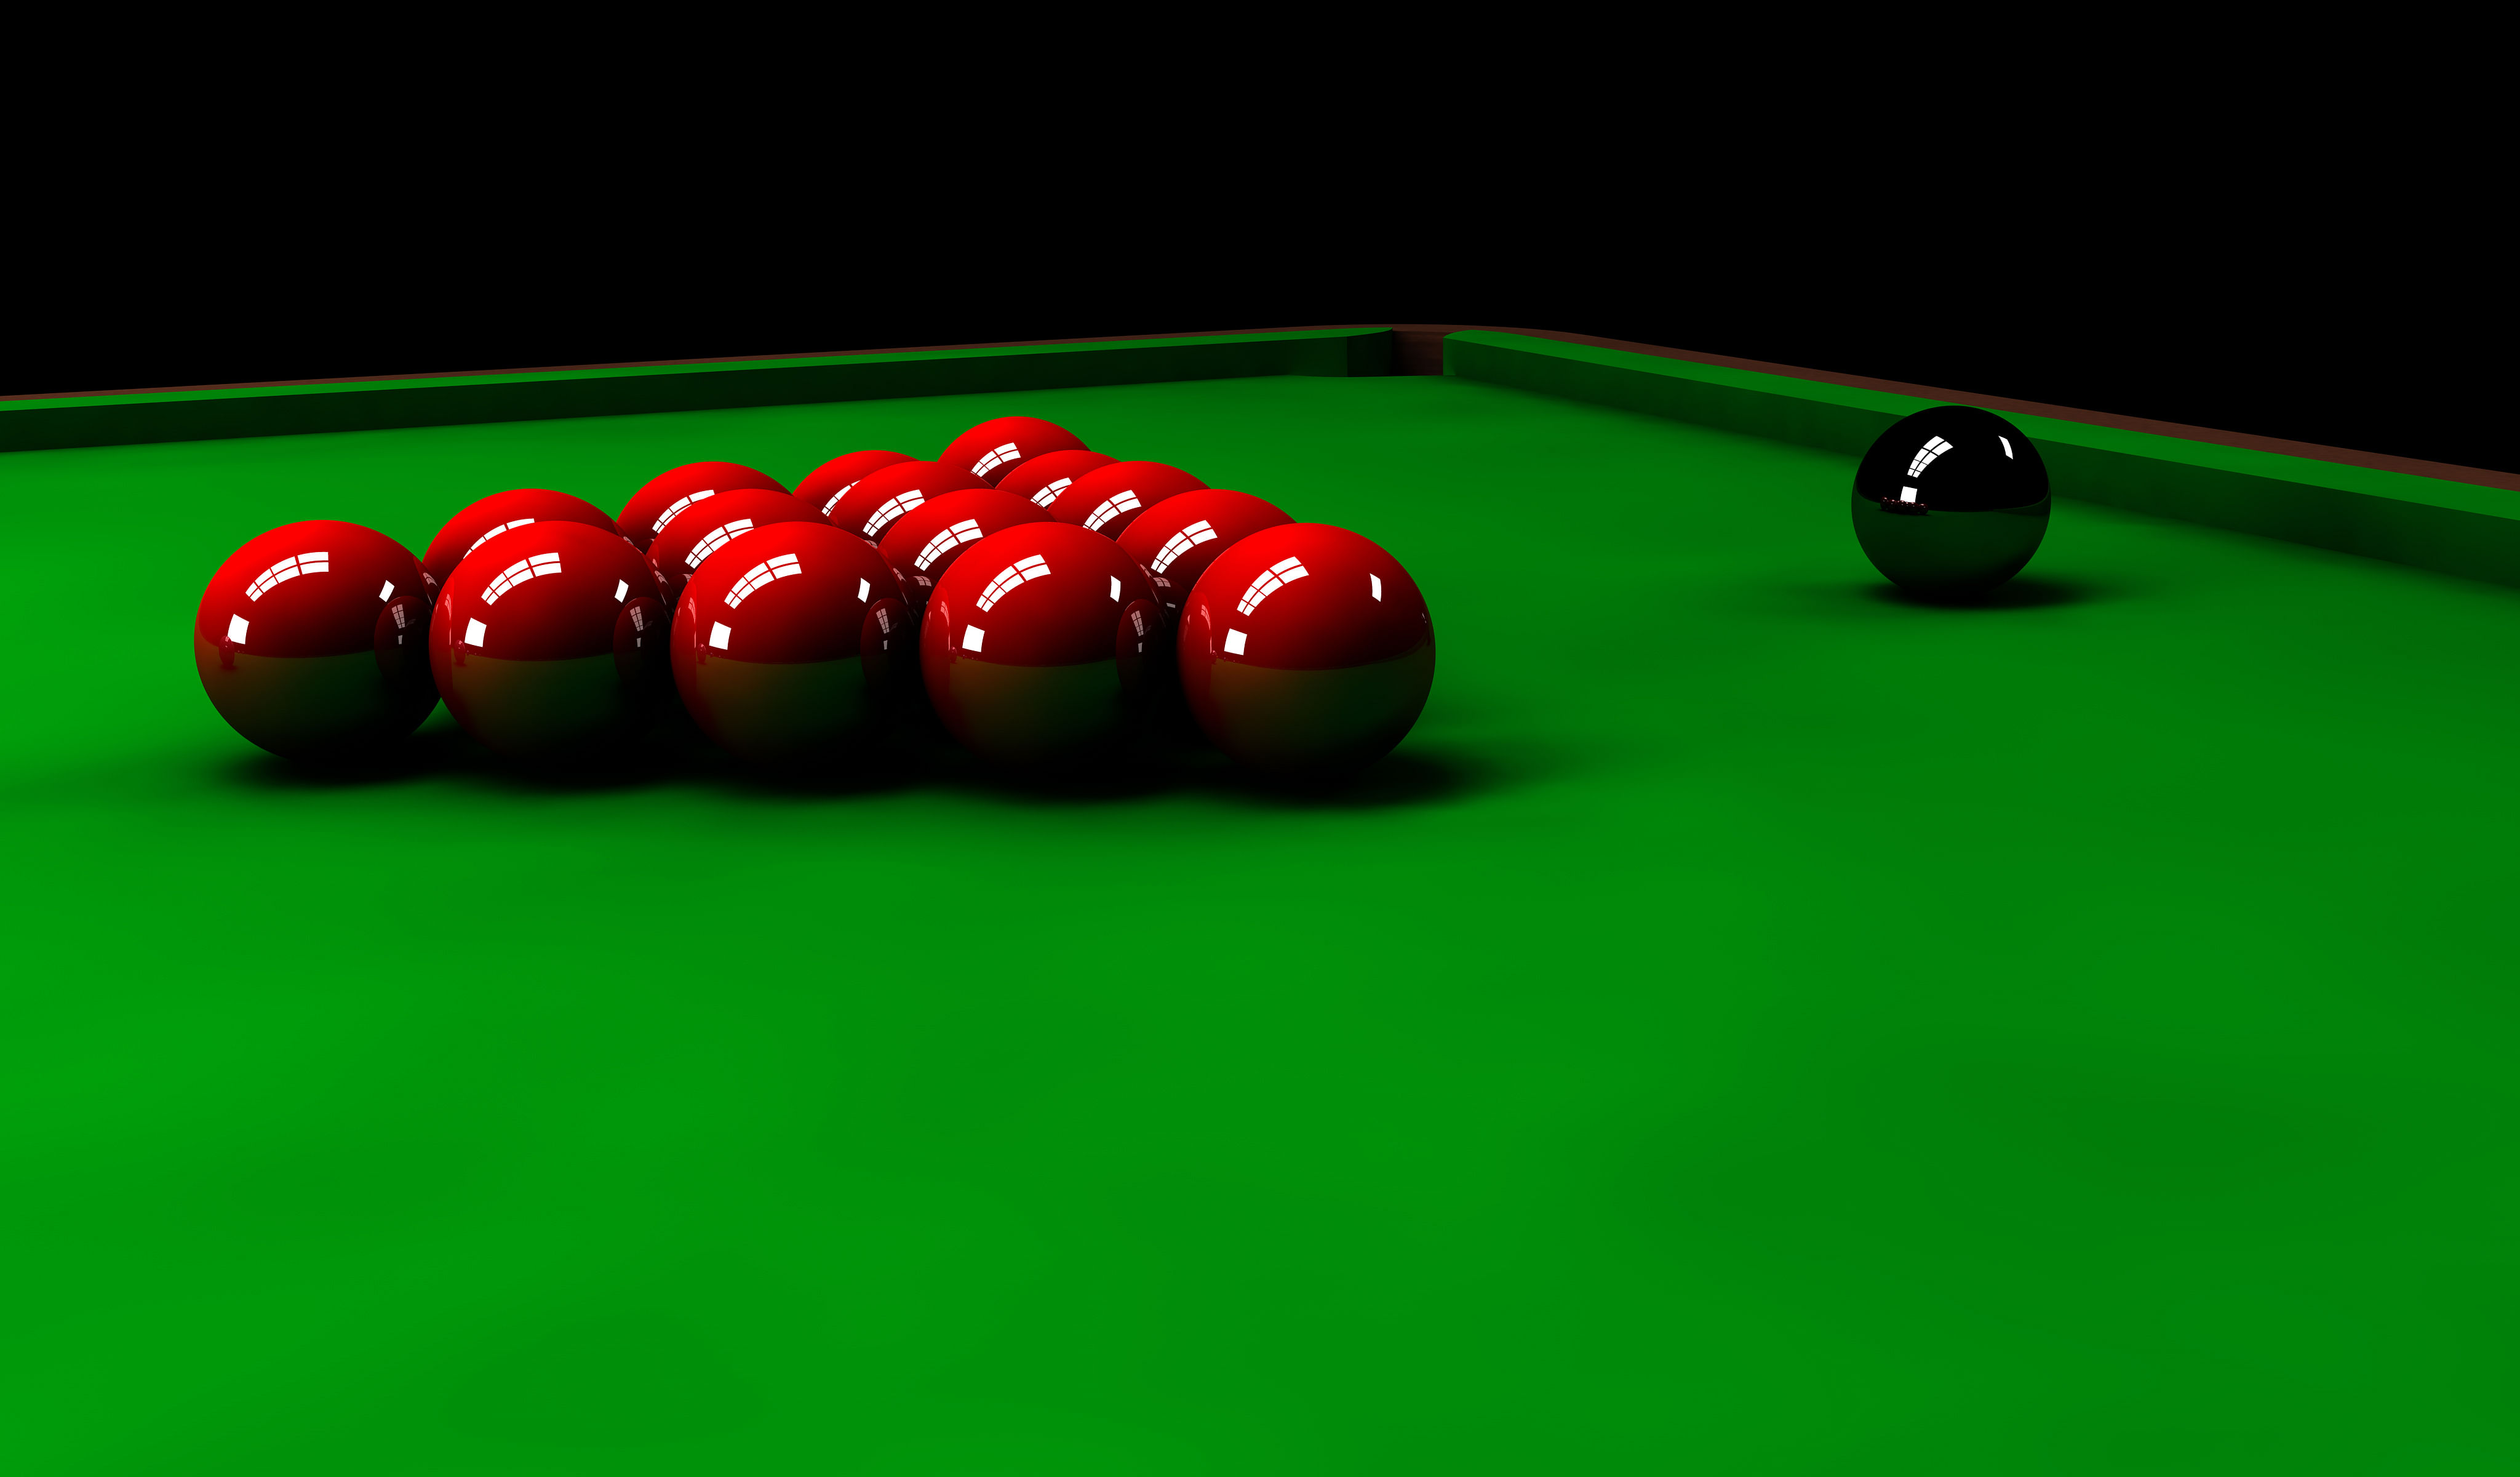 Asian Tour for Cue sports may be a reality: ISBF President